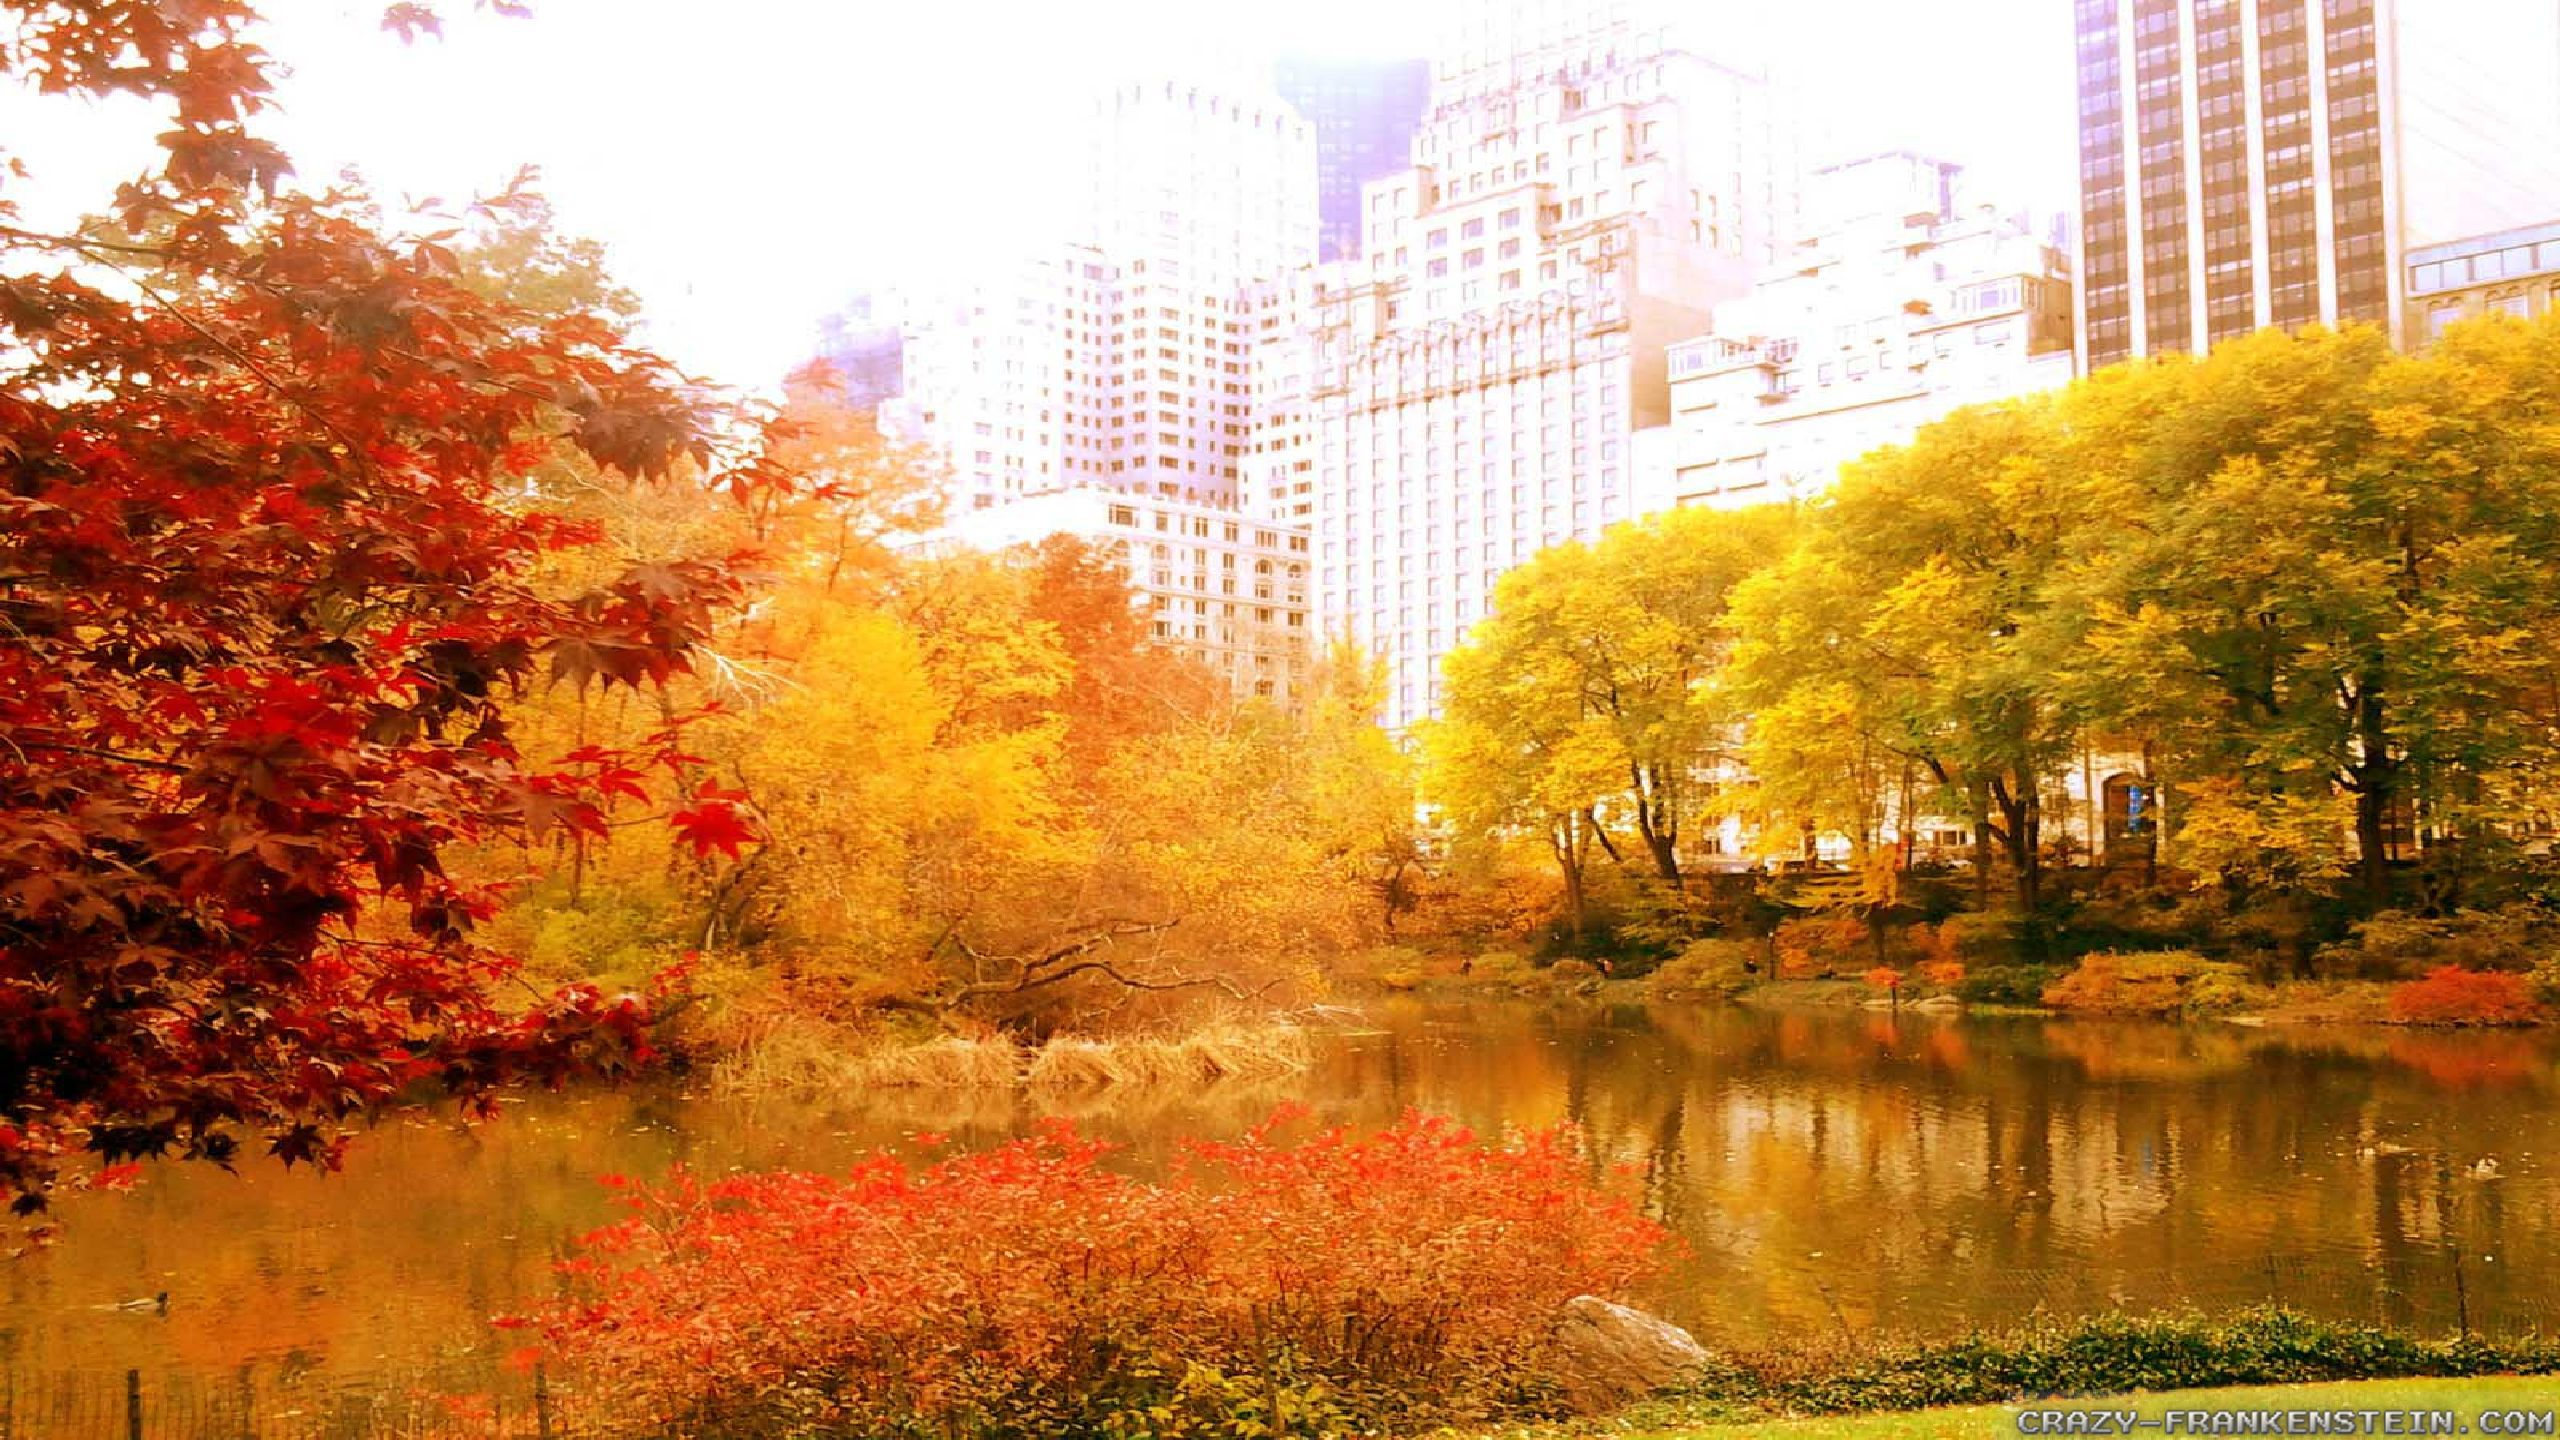 4k Central Park In The Fall Wallpaper Autumn In New York Wallpapers Seasonal Crazy Frankenstein